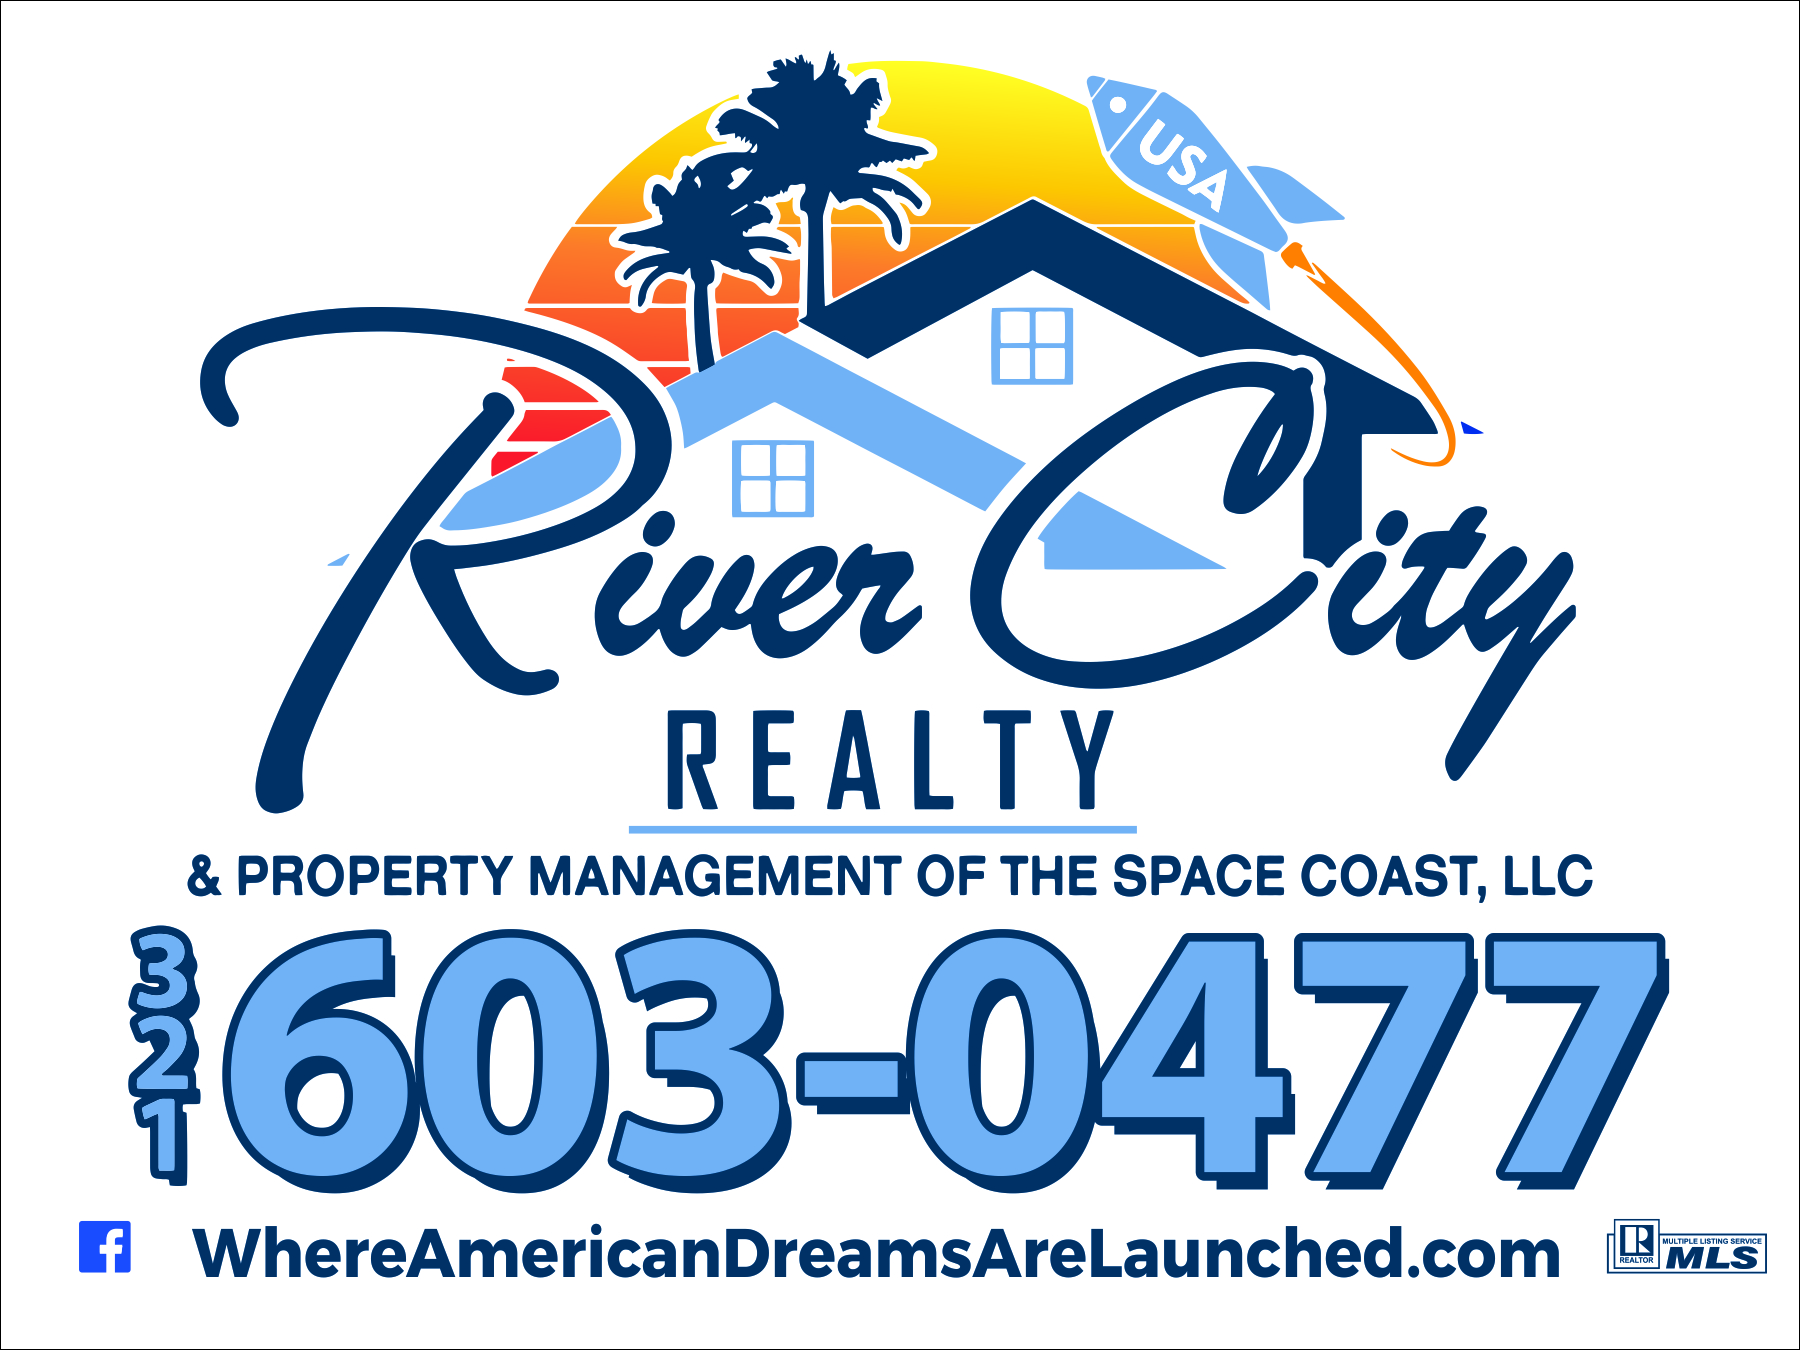 River City Realty